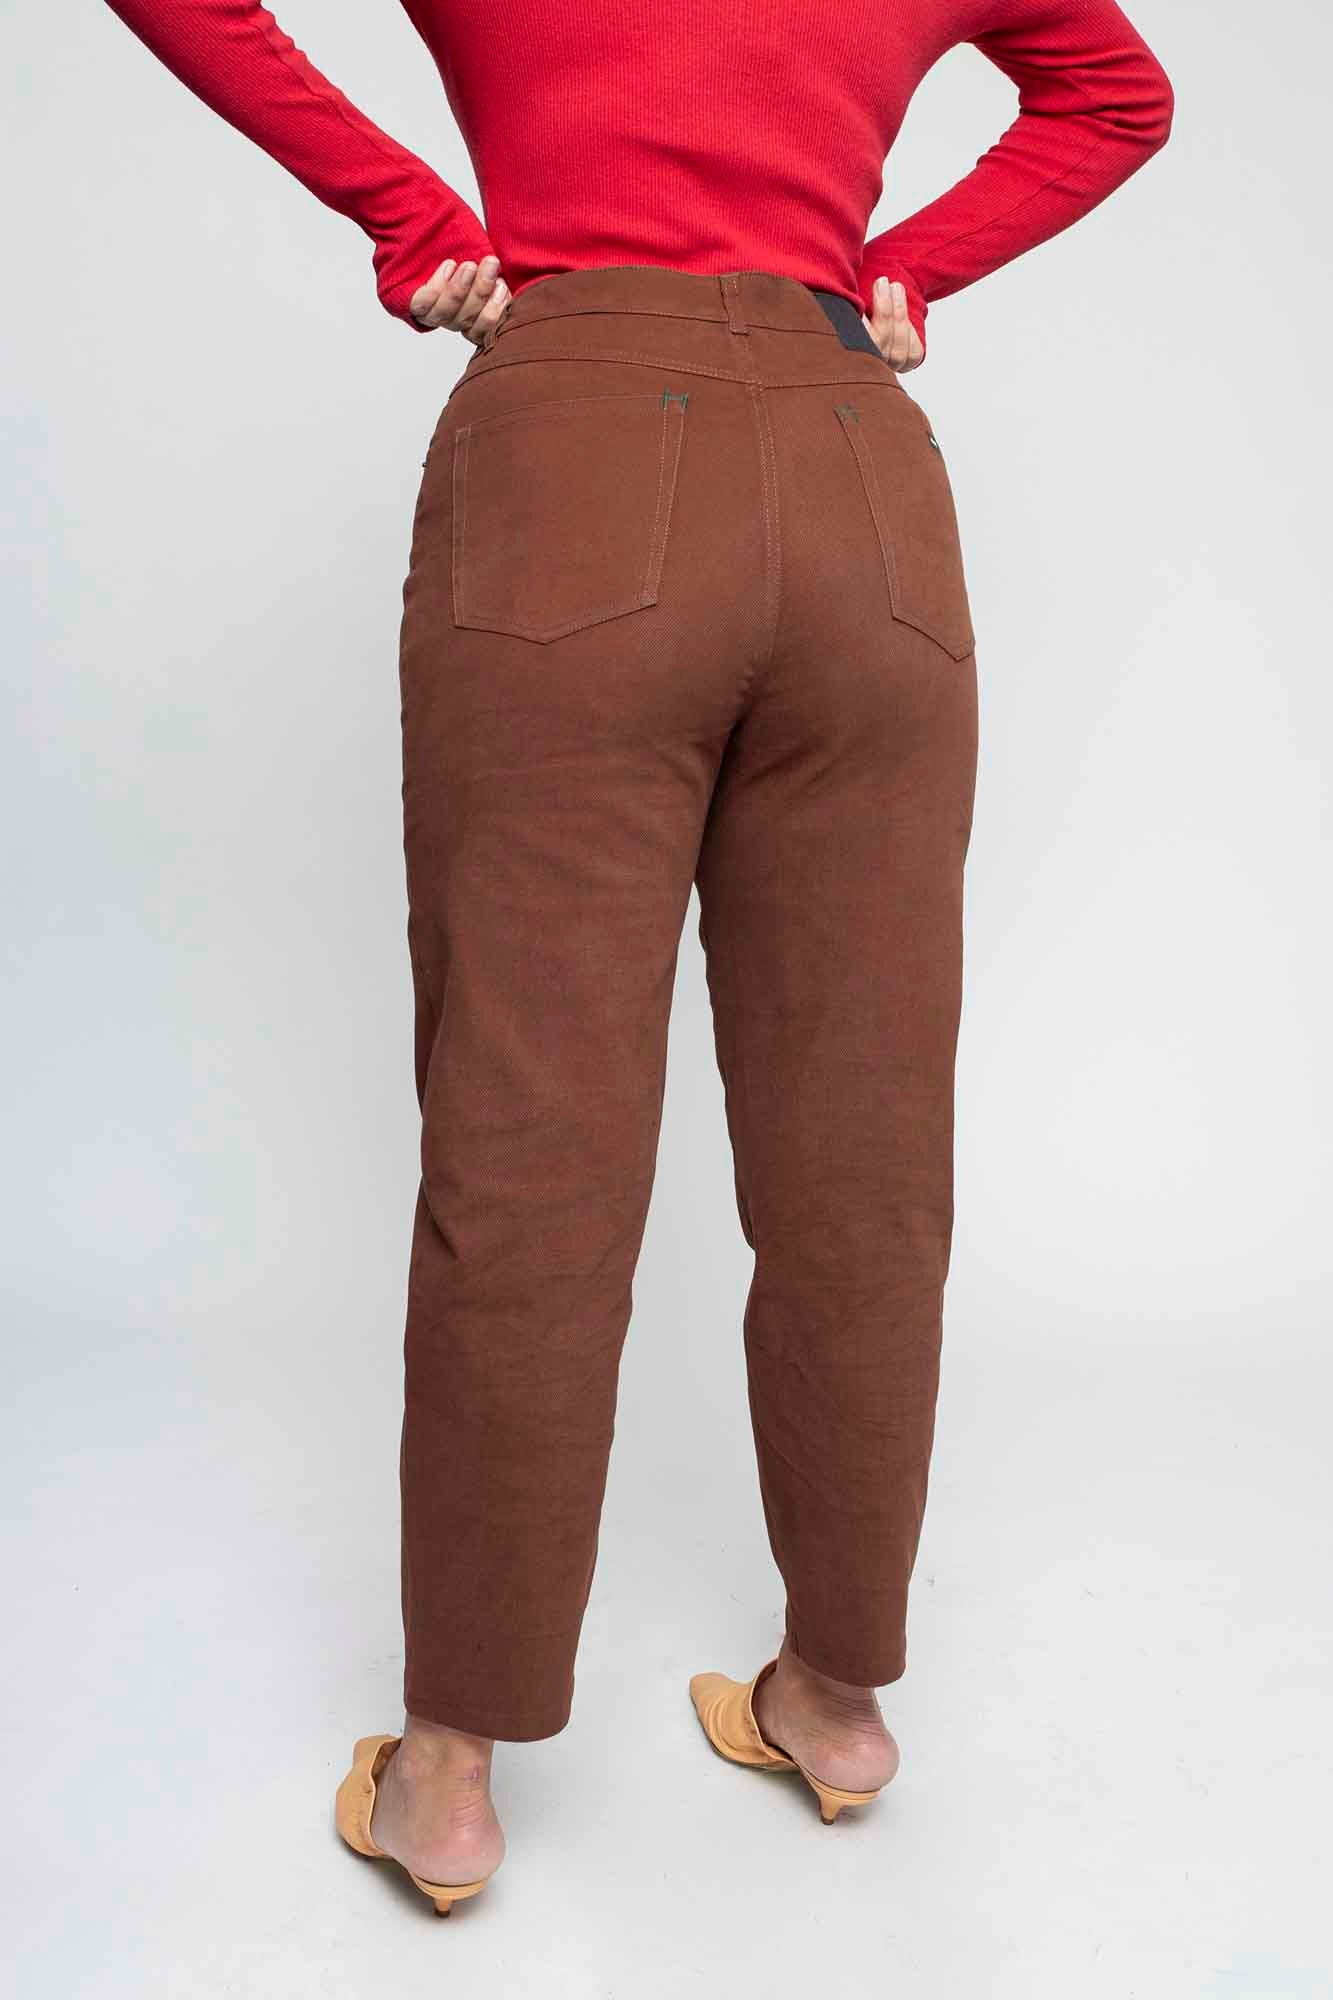 LENNY pants brown